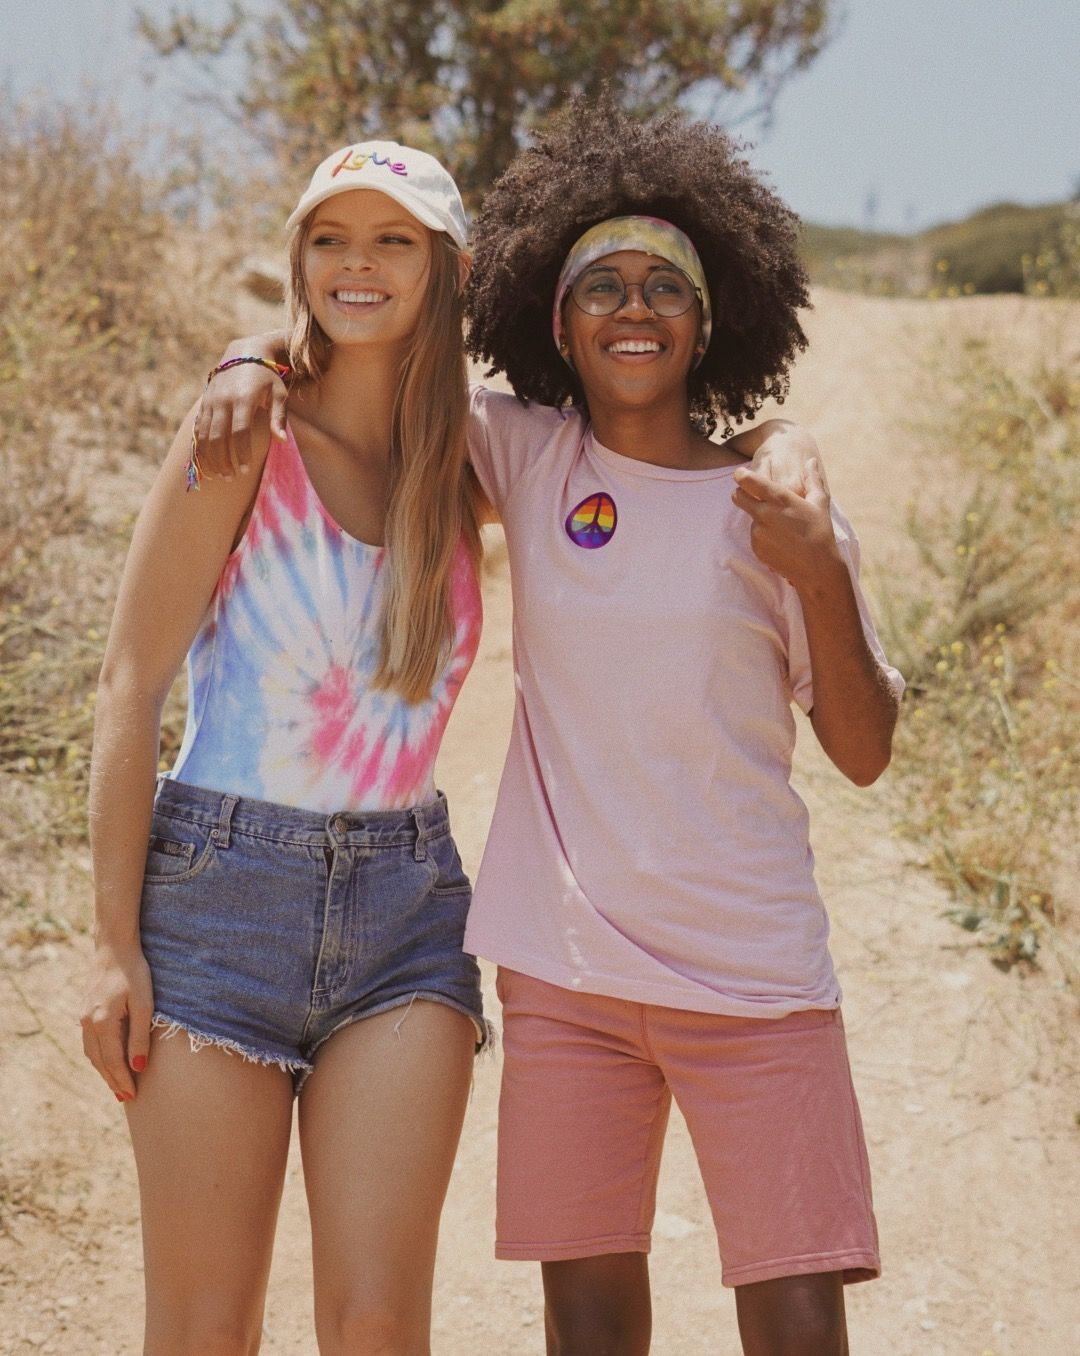 Cute lesbian couple for Abercrombie s Pride collection